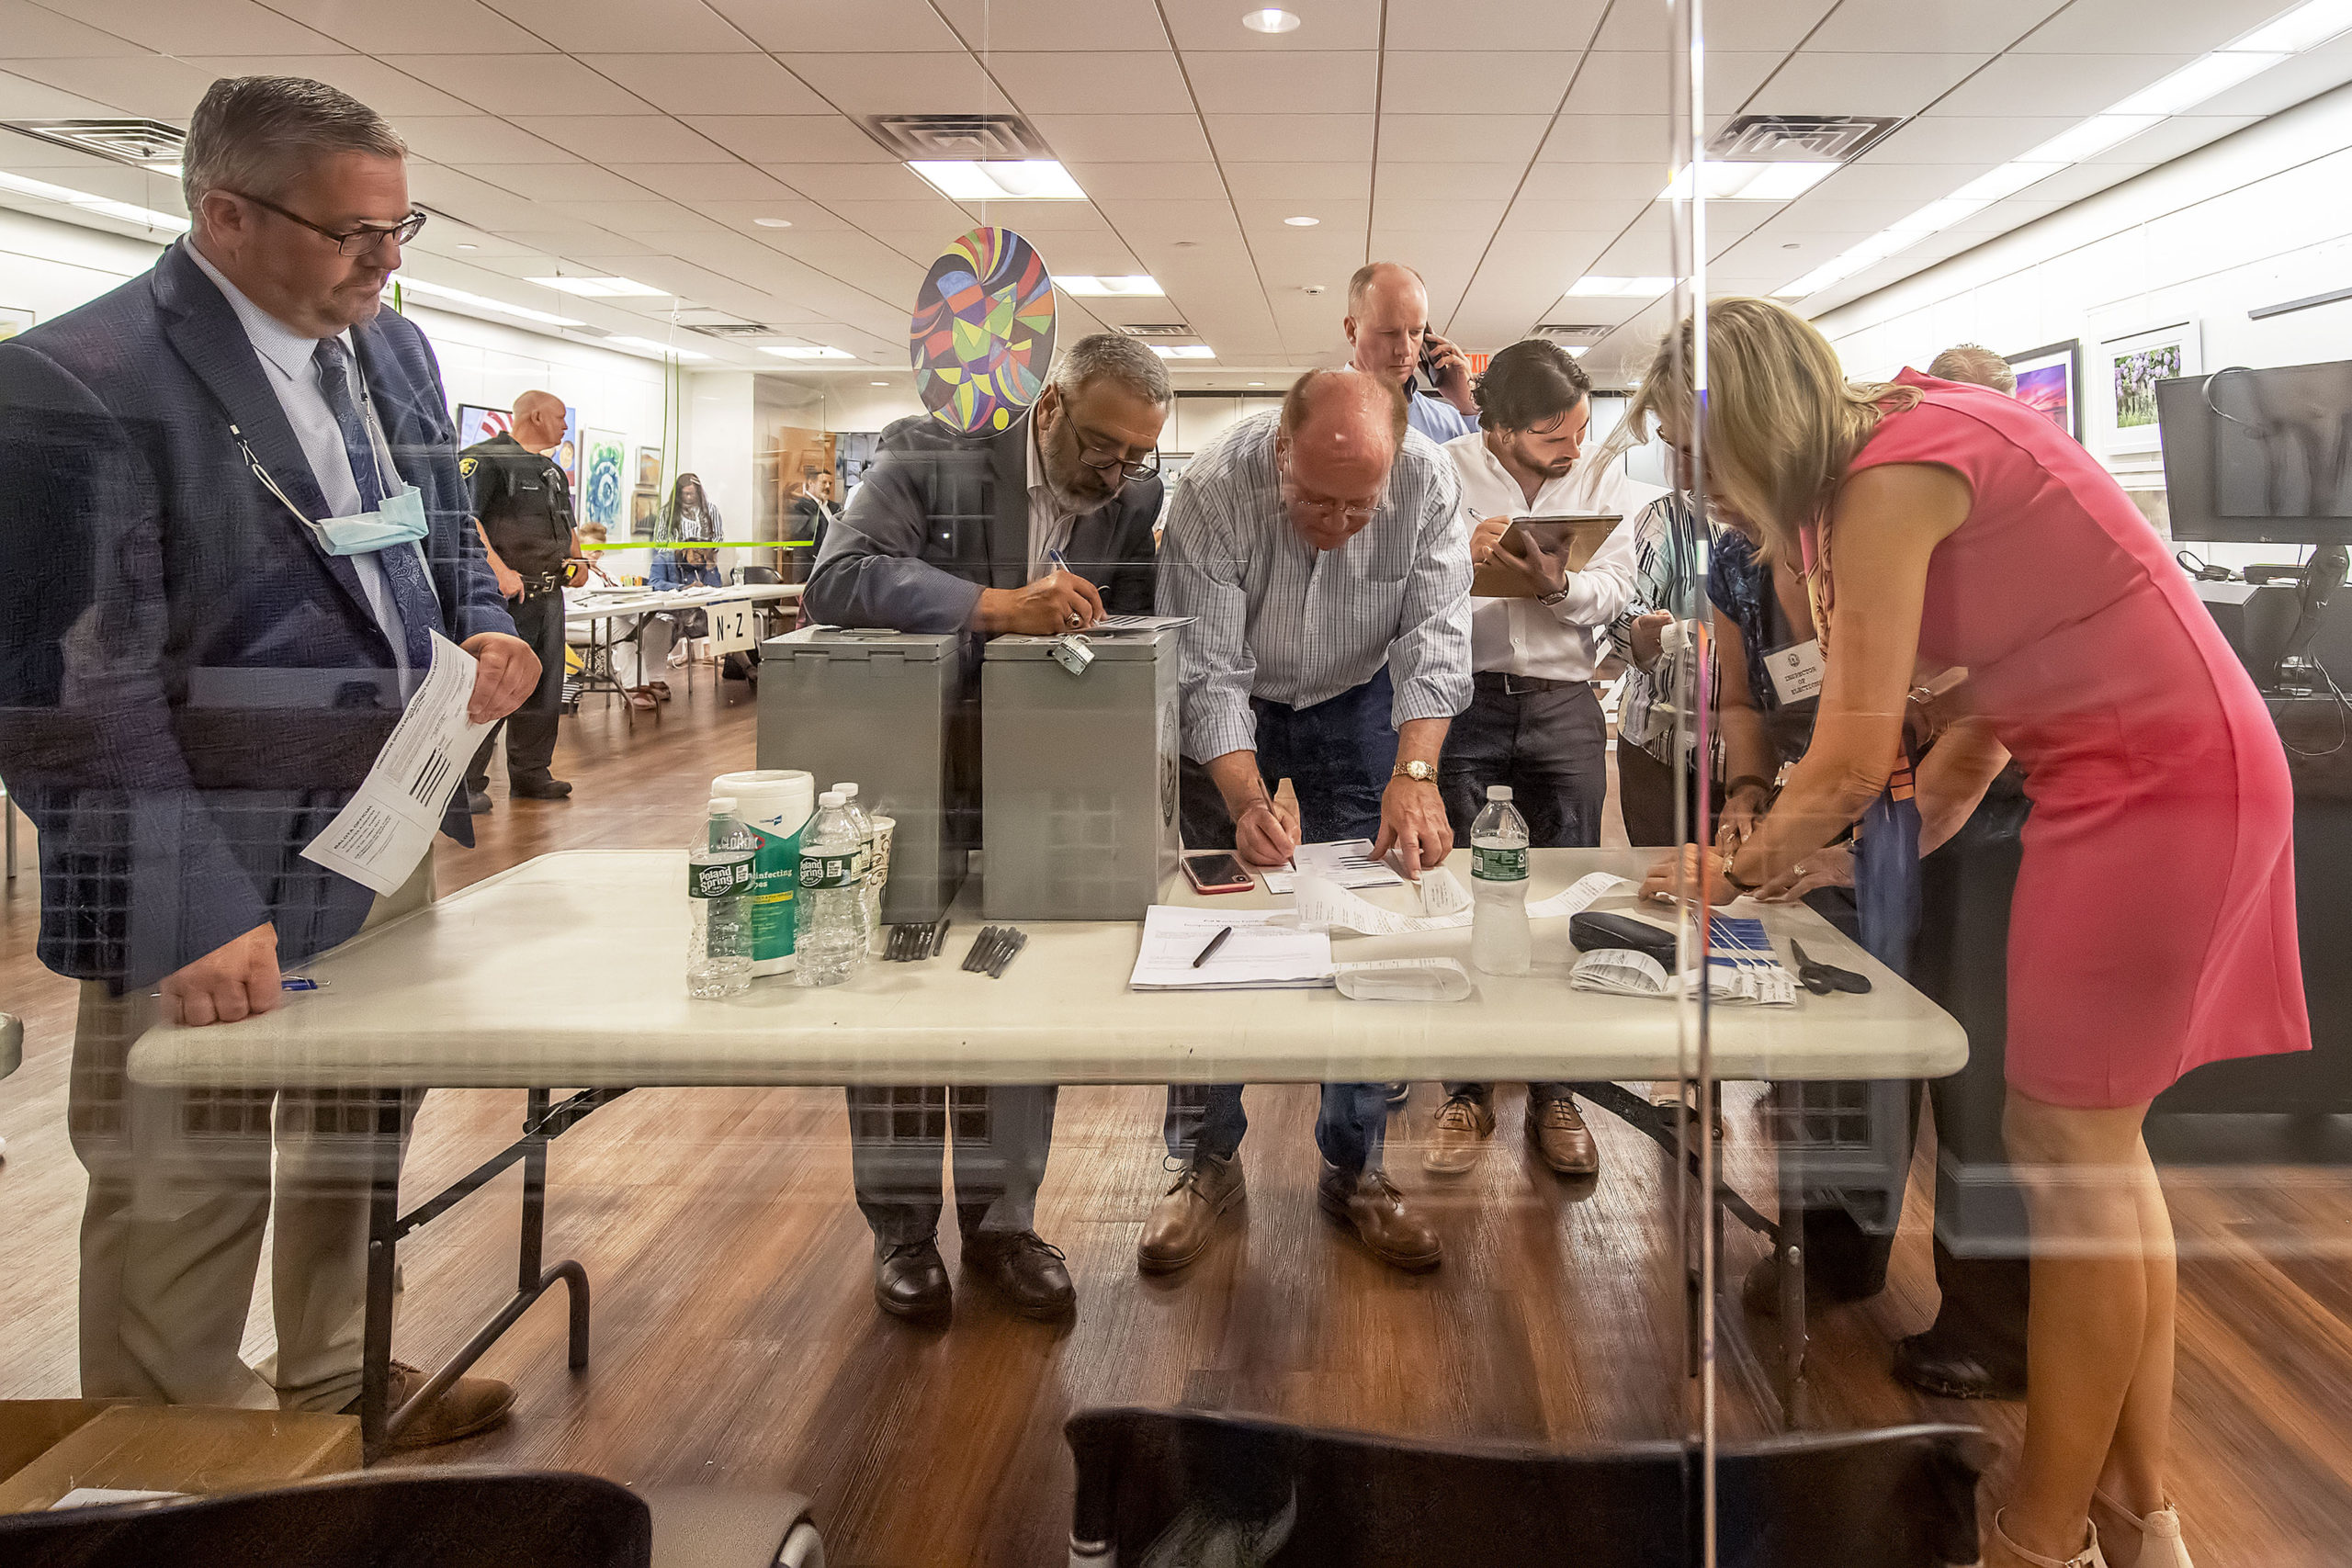 The vote count from each of the voting machines is tabulated during the 2021 Southampton Village Mayoral election at the Southampton Cultural Center on Friday night. MICHAEL HELLER